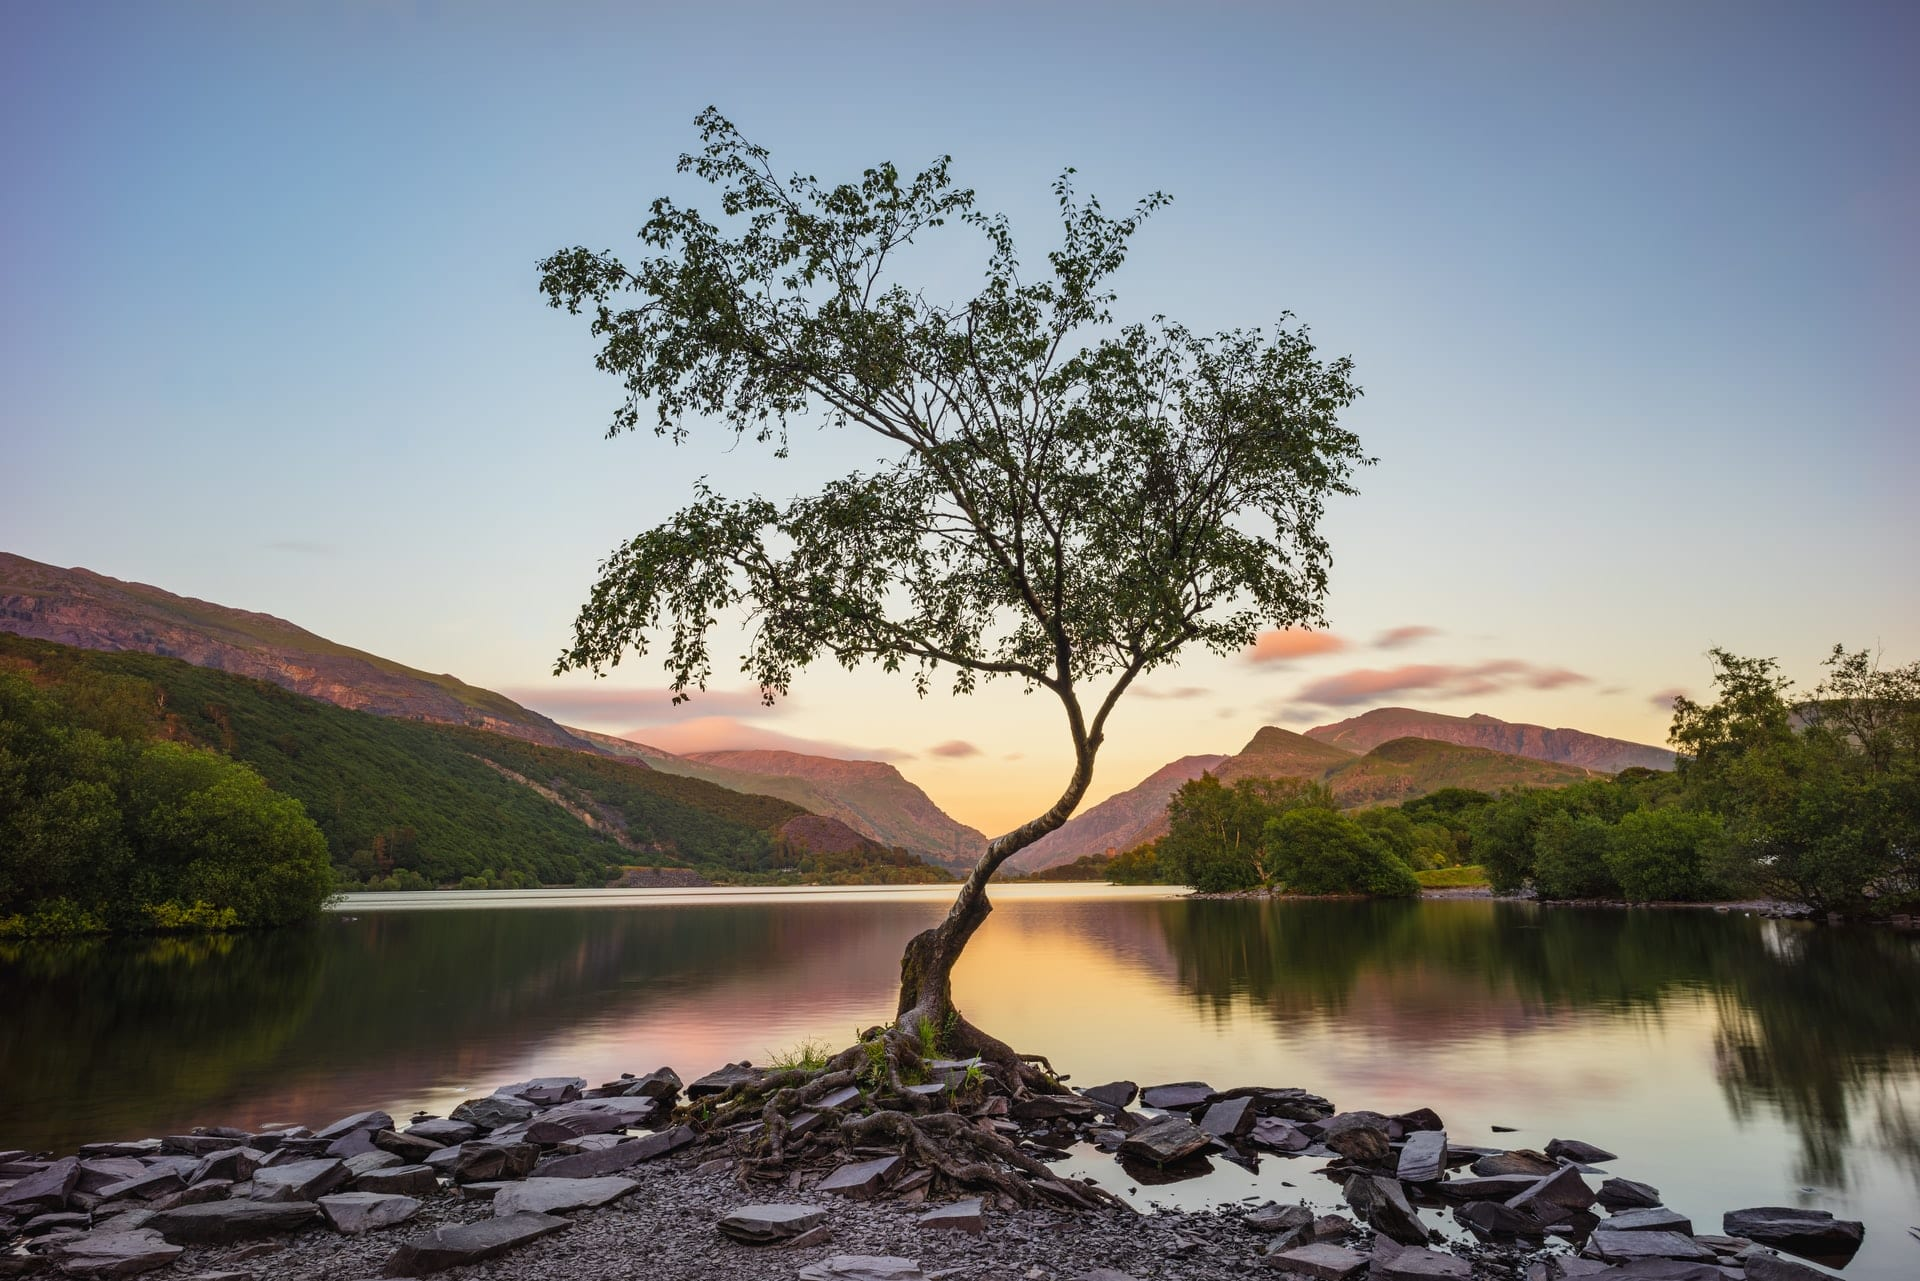 lone-tree-standing-by-llyn-padarn-lake-by-mountains-at-sunrise-in-llanberis-snowdonia-national-park-wales